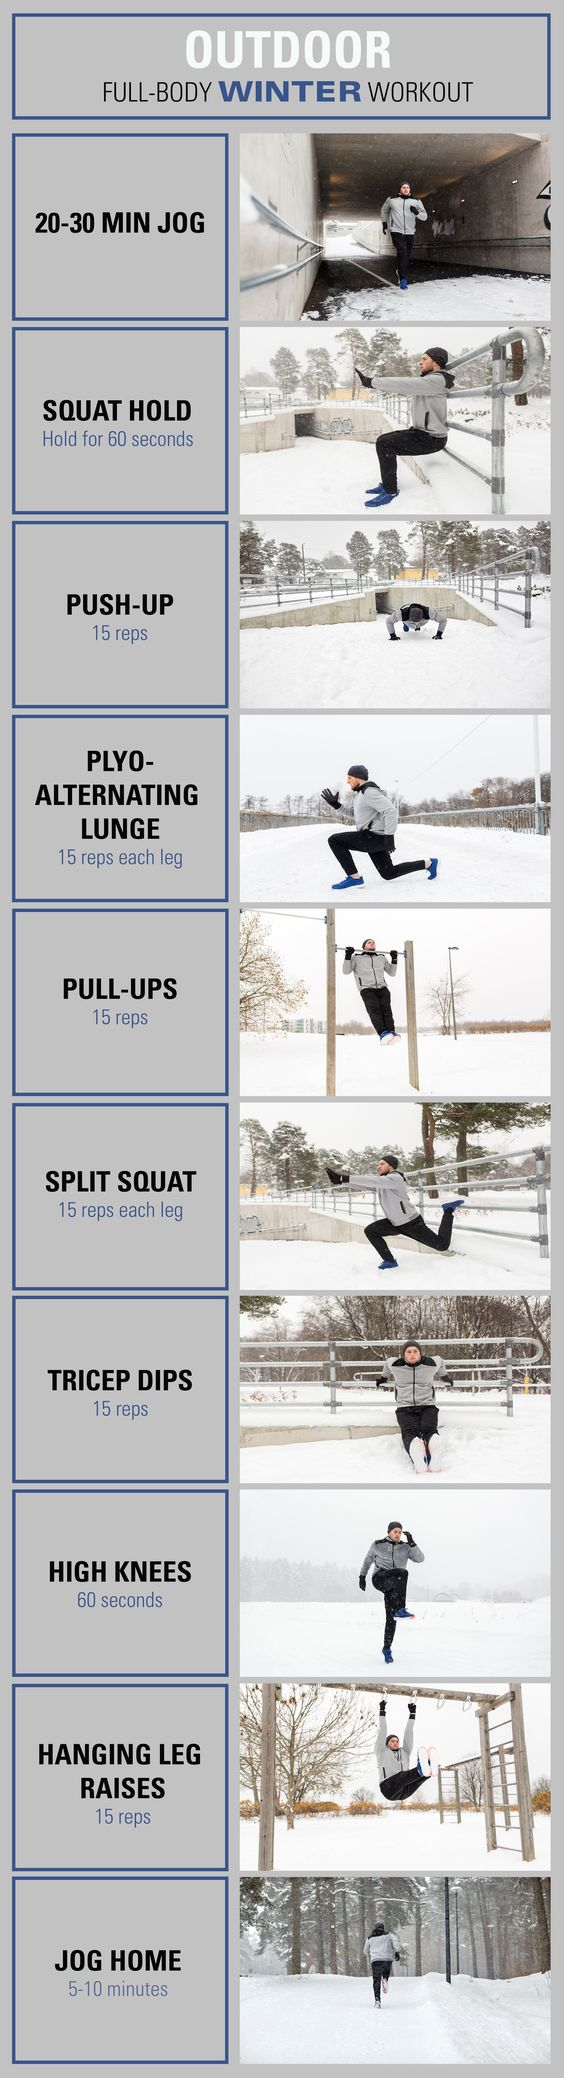 Unexpected Ways to Work Out Before Winter is Over